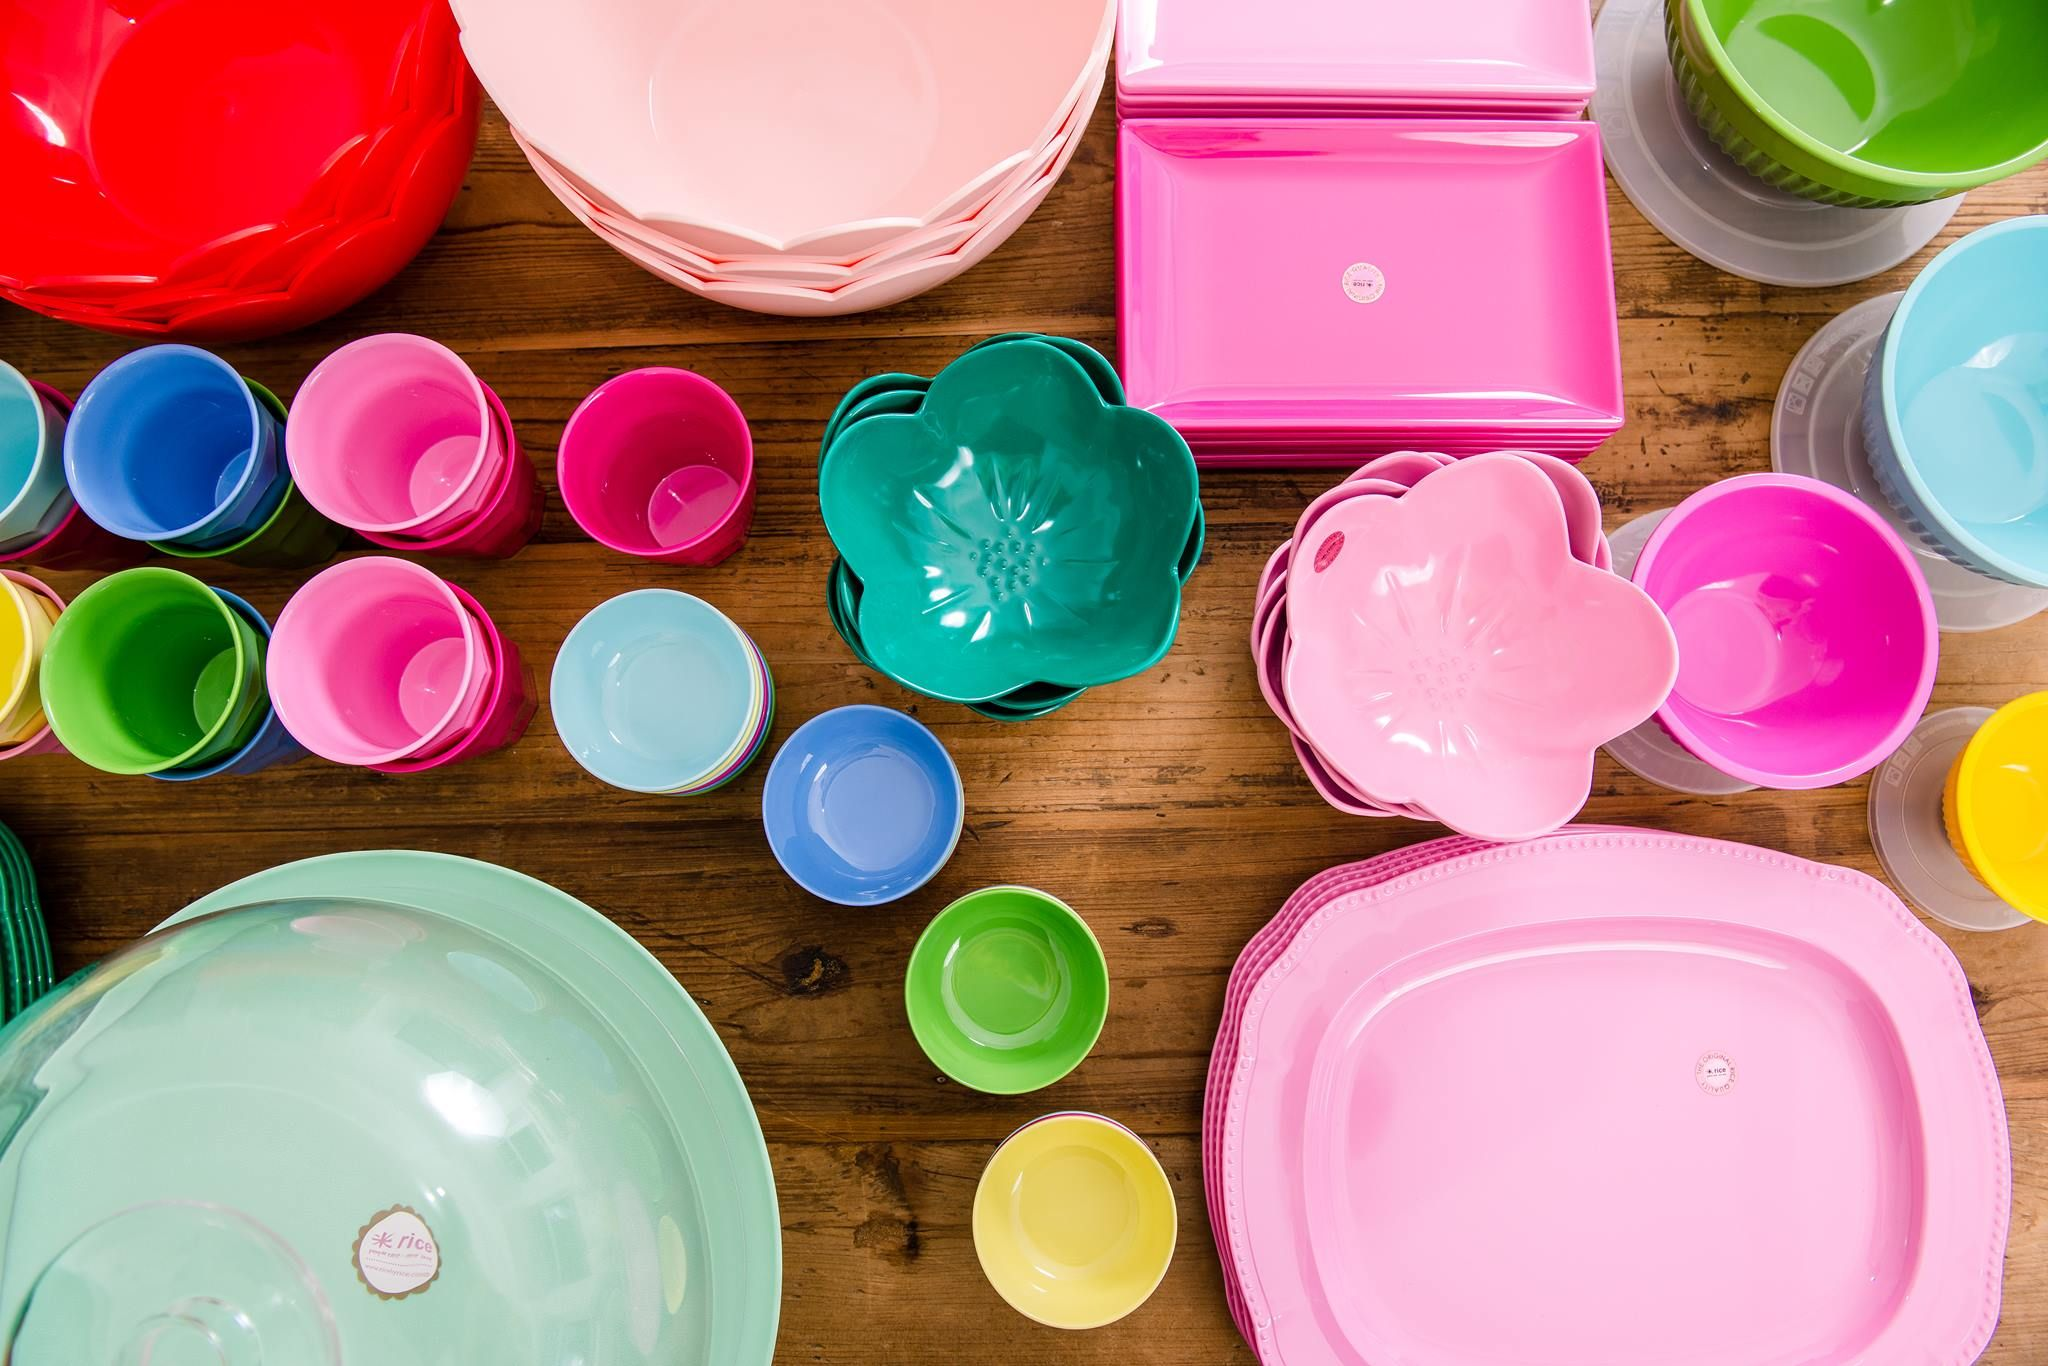 Hire Stylish Re Useable Kids Party Tableware At A Great Price Ditch The Party Disposables And Choose From A G With Images Kids Party Tableware Party Tableware Party Bowls